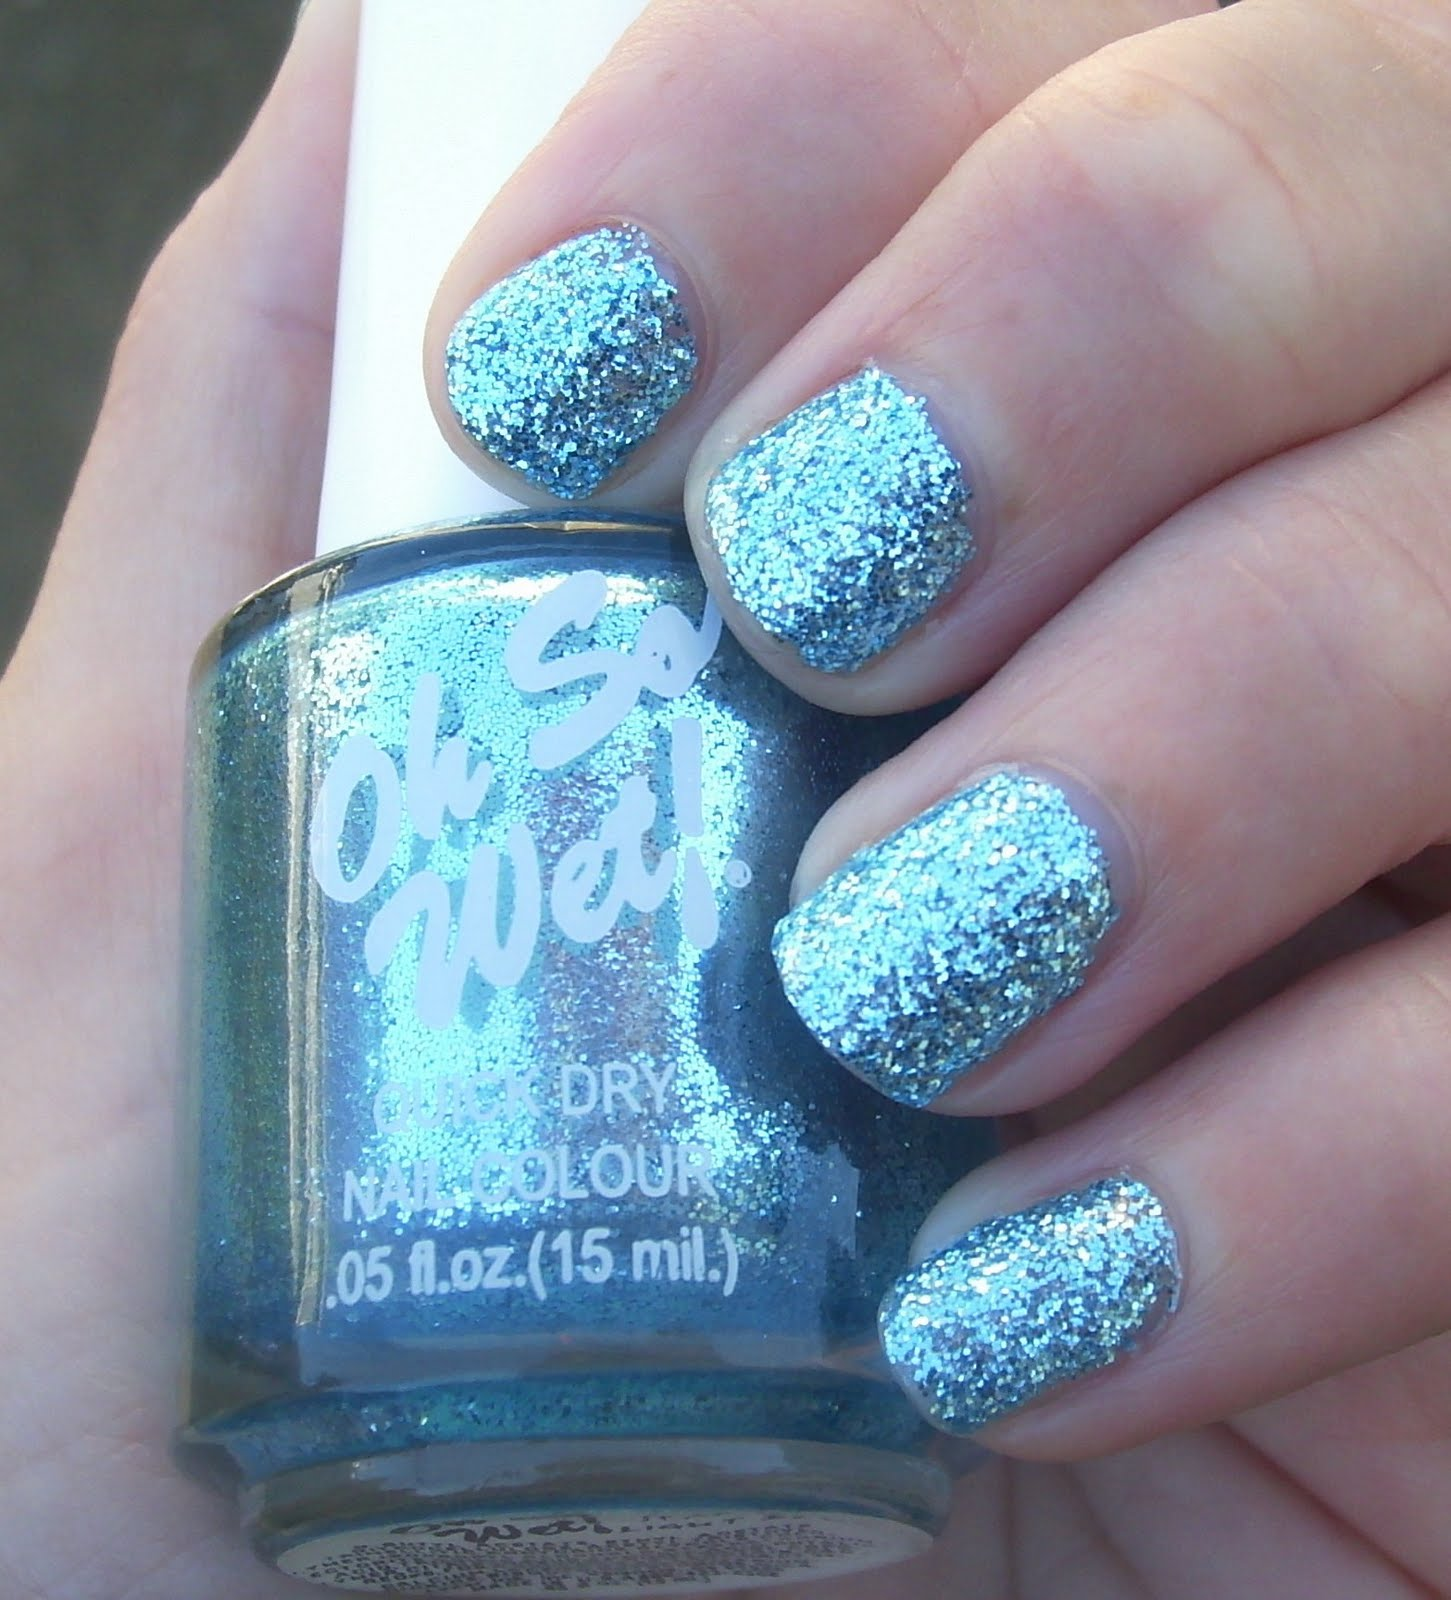 Kitty Luvs Color!: Oh So Wet! Nail Polish, Sparkle Light Blue